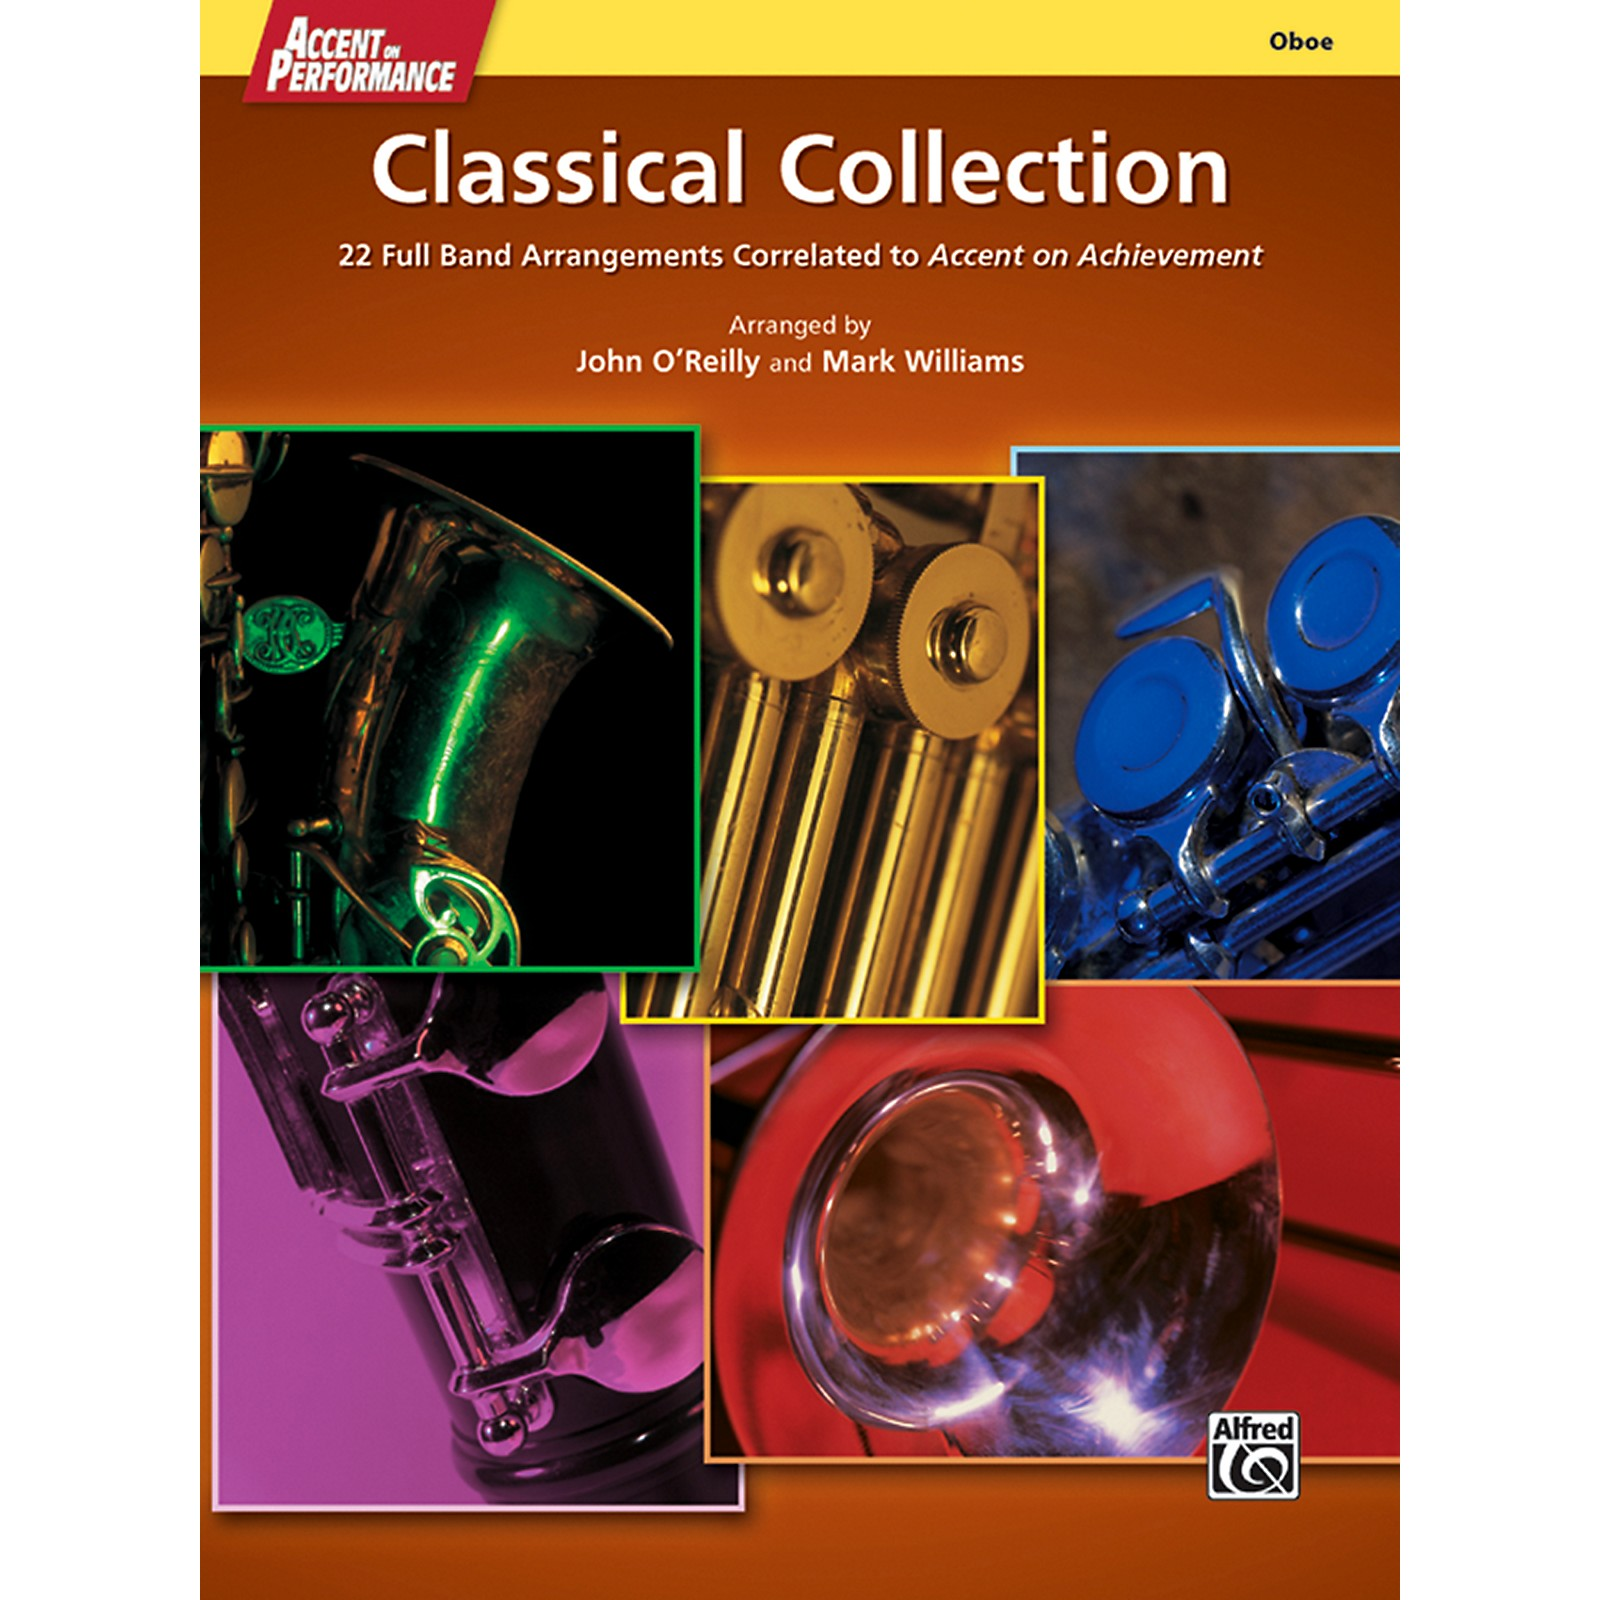 Alfred Accent on Performance Classical Collection Oboe Book